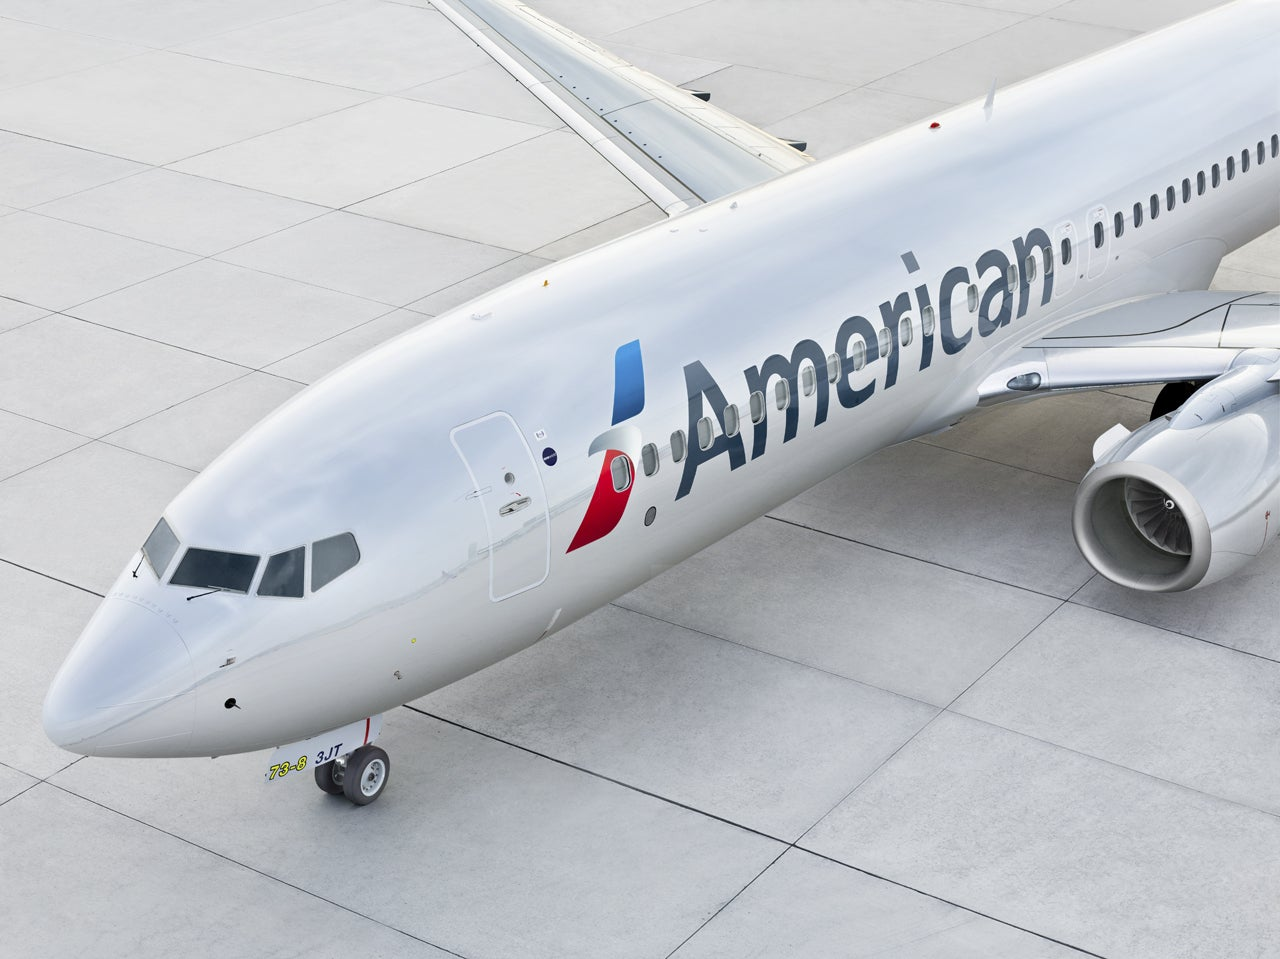 Citi Adds 48-month Restriction to All American Airlines Credit Cards